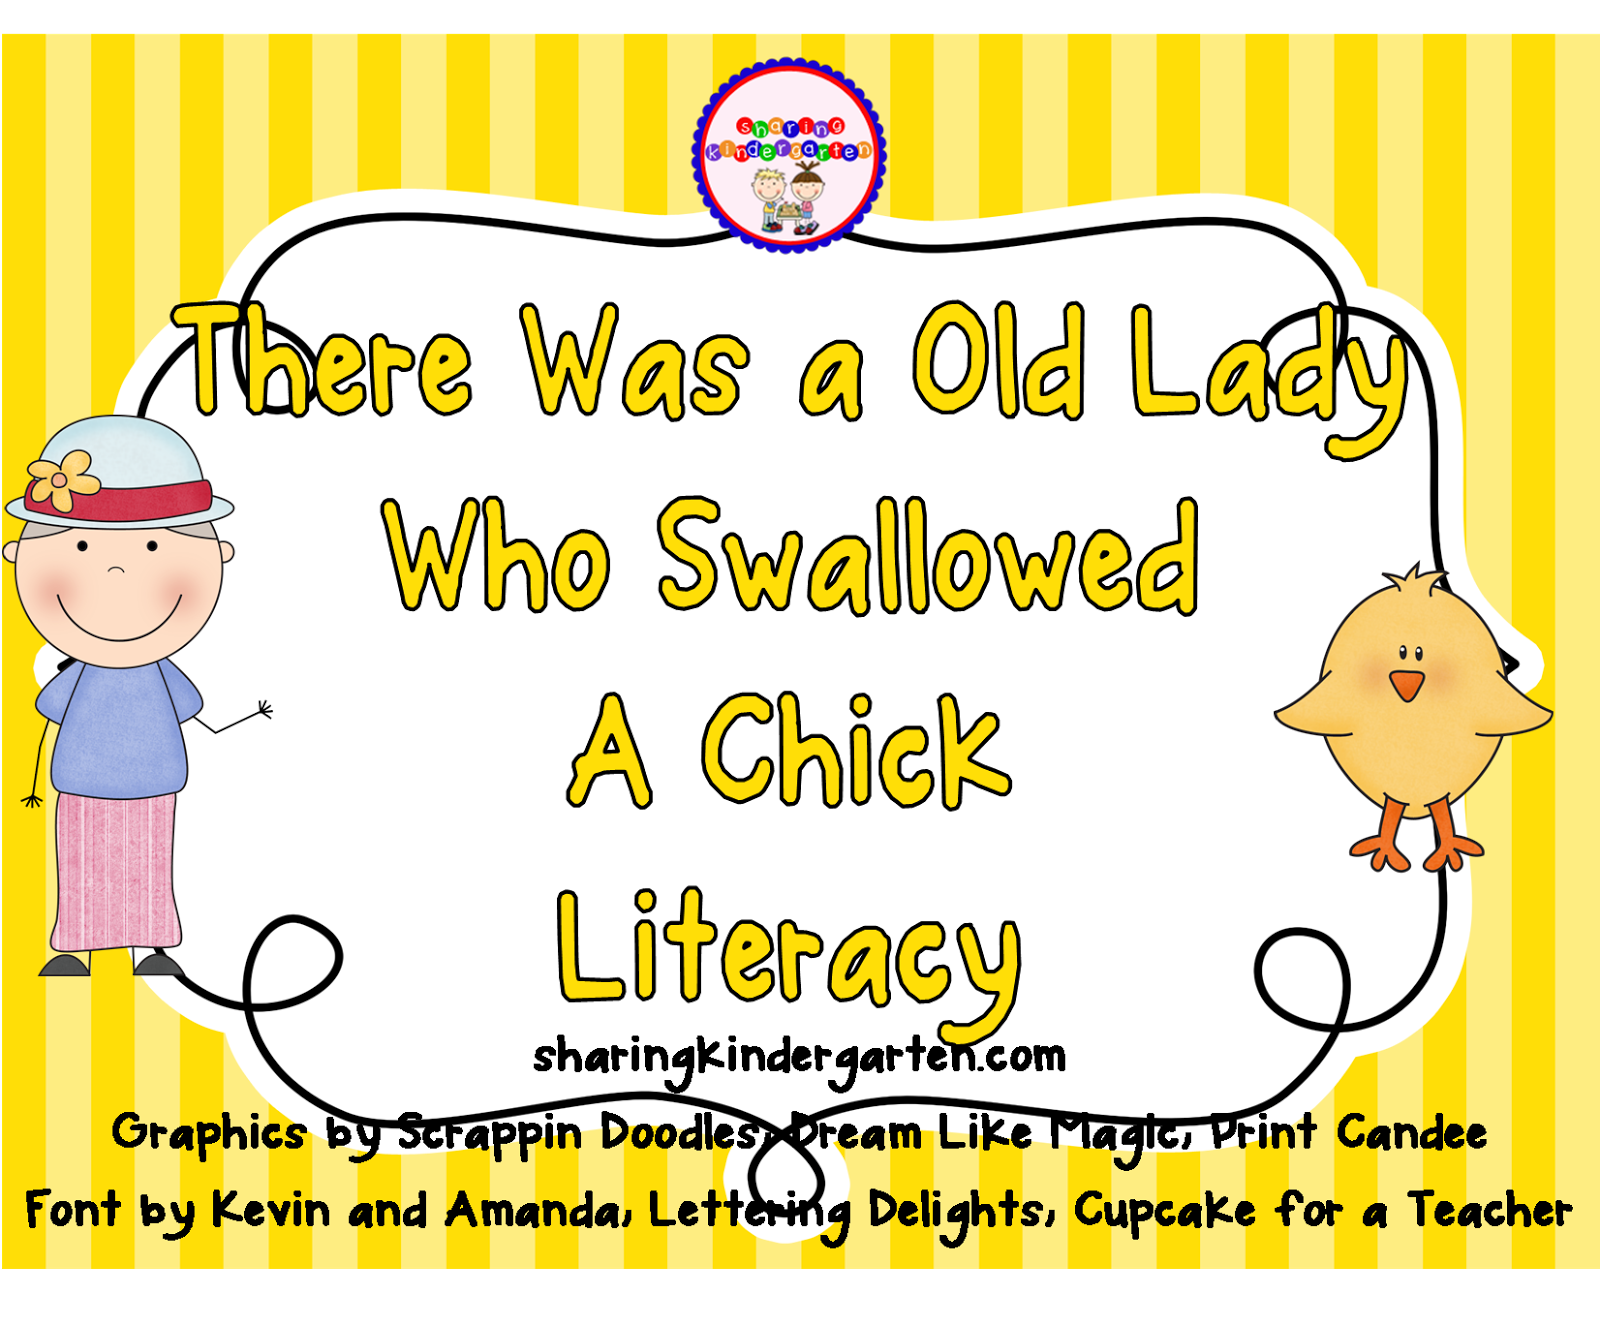 http://www.teacherspayteachers.com/Product/There-Was-an-Old-Lady-Who ...